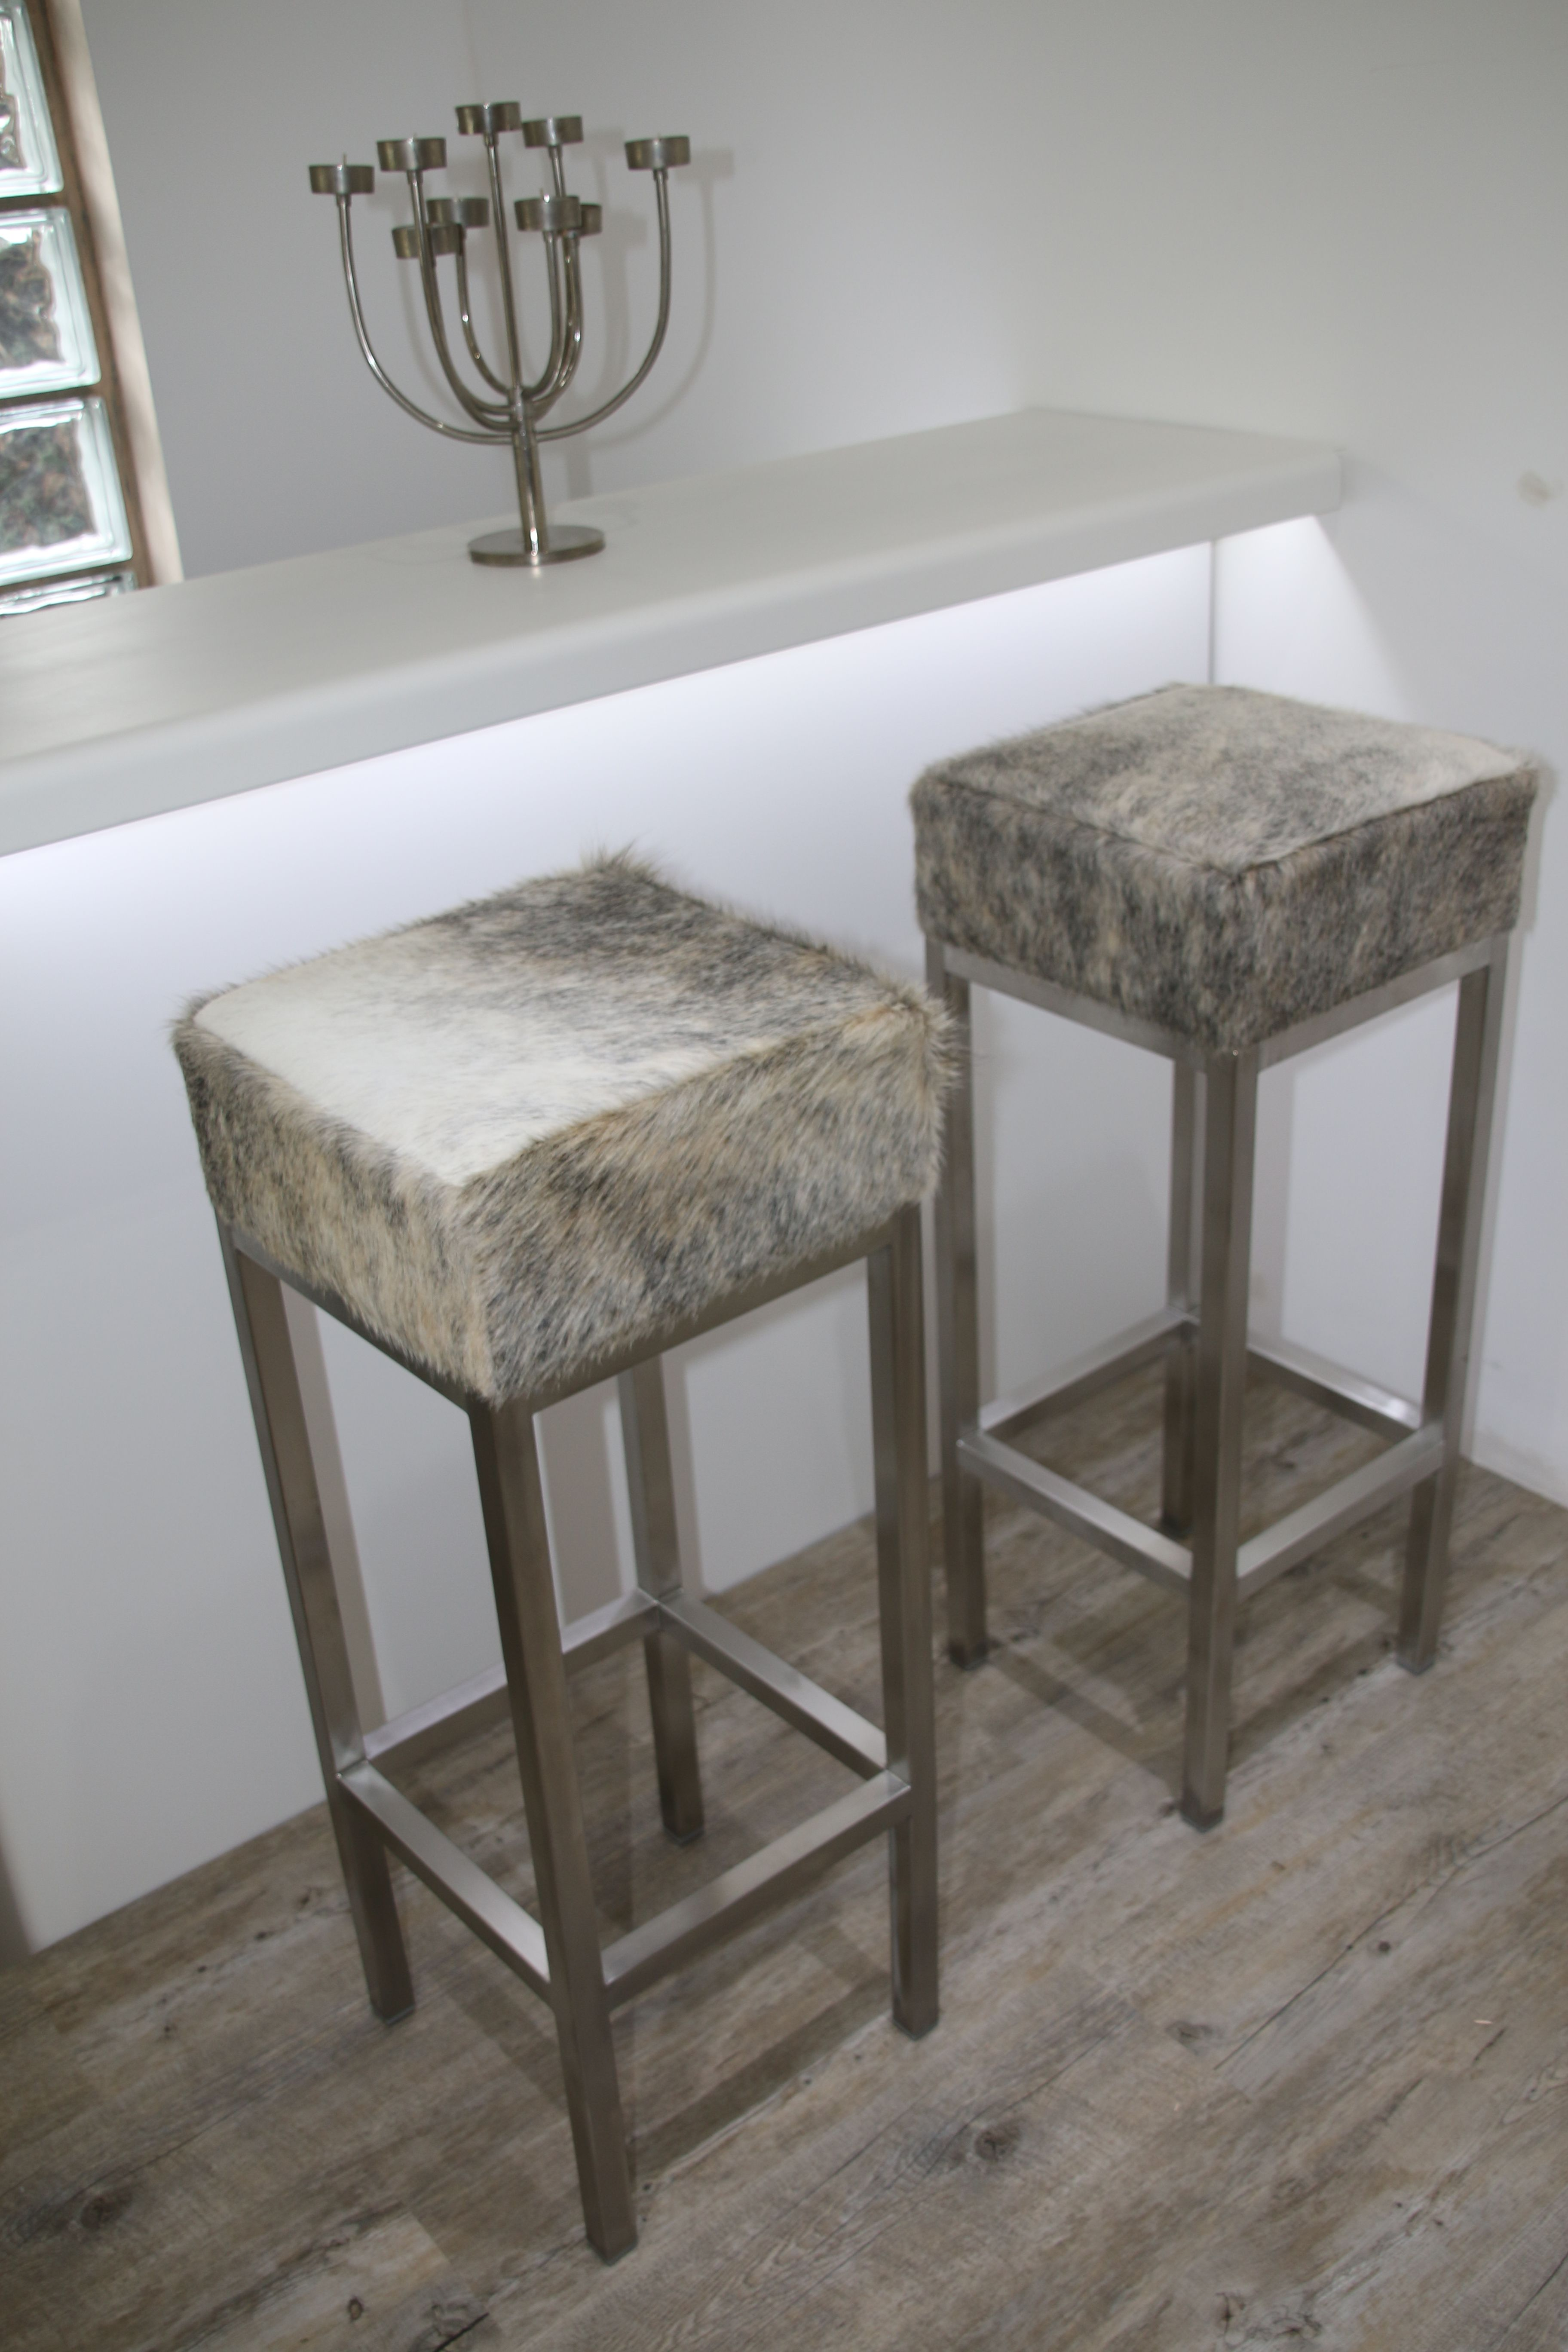 Grey And White Cowhide Bar Stools With Stainless Steel Frames Cowhide Bar Stools Bar Stools Decor